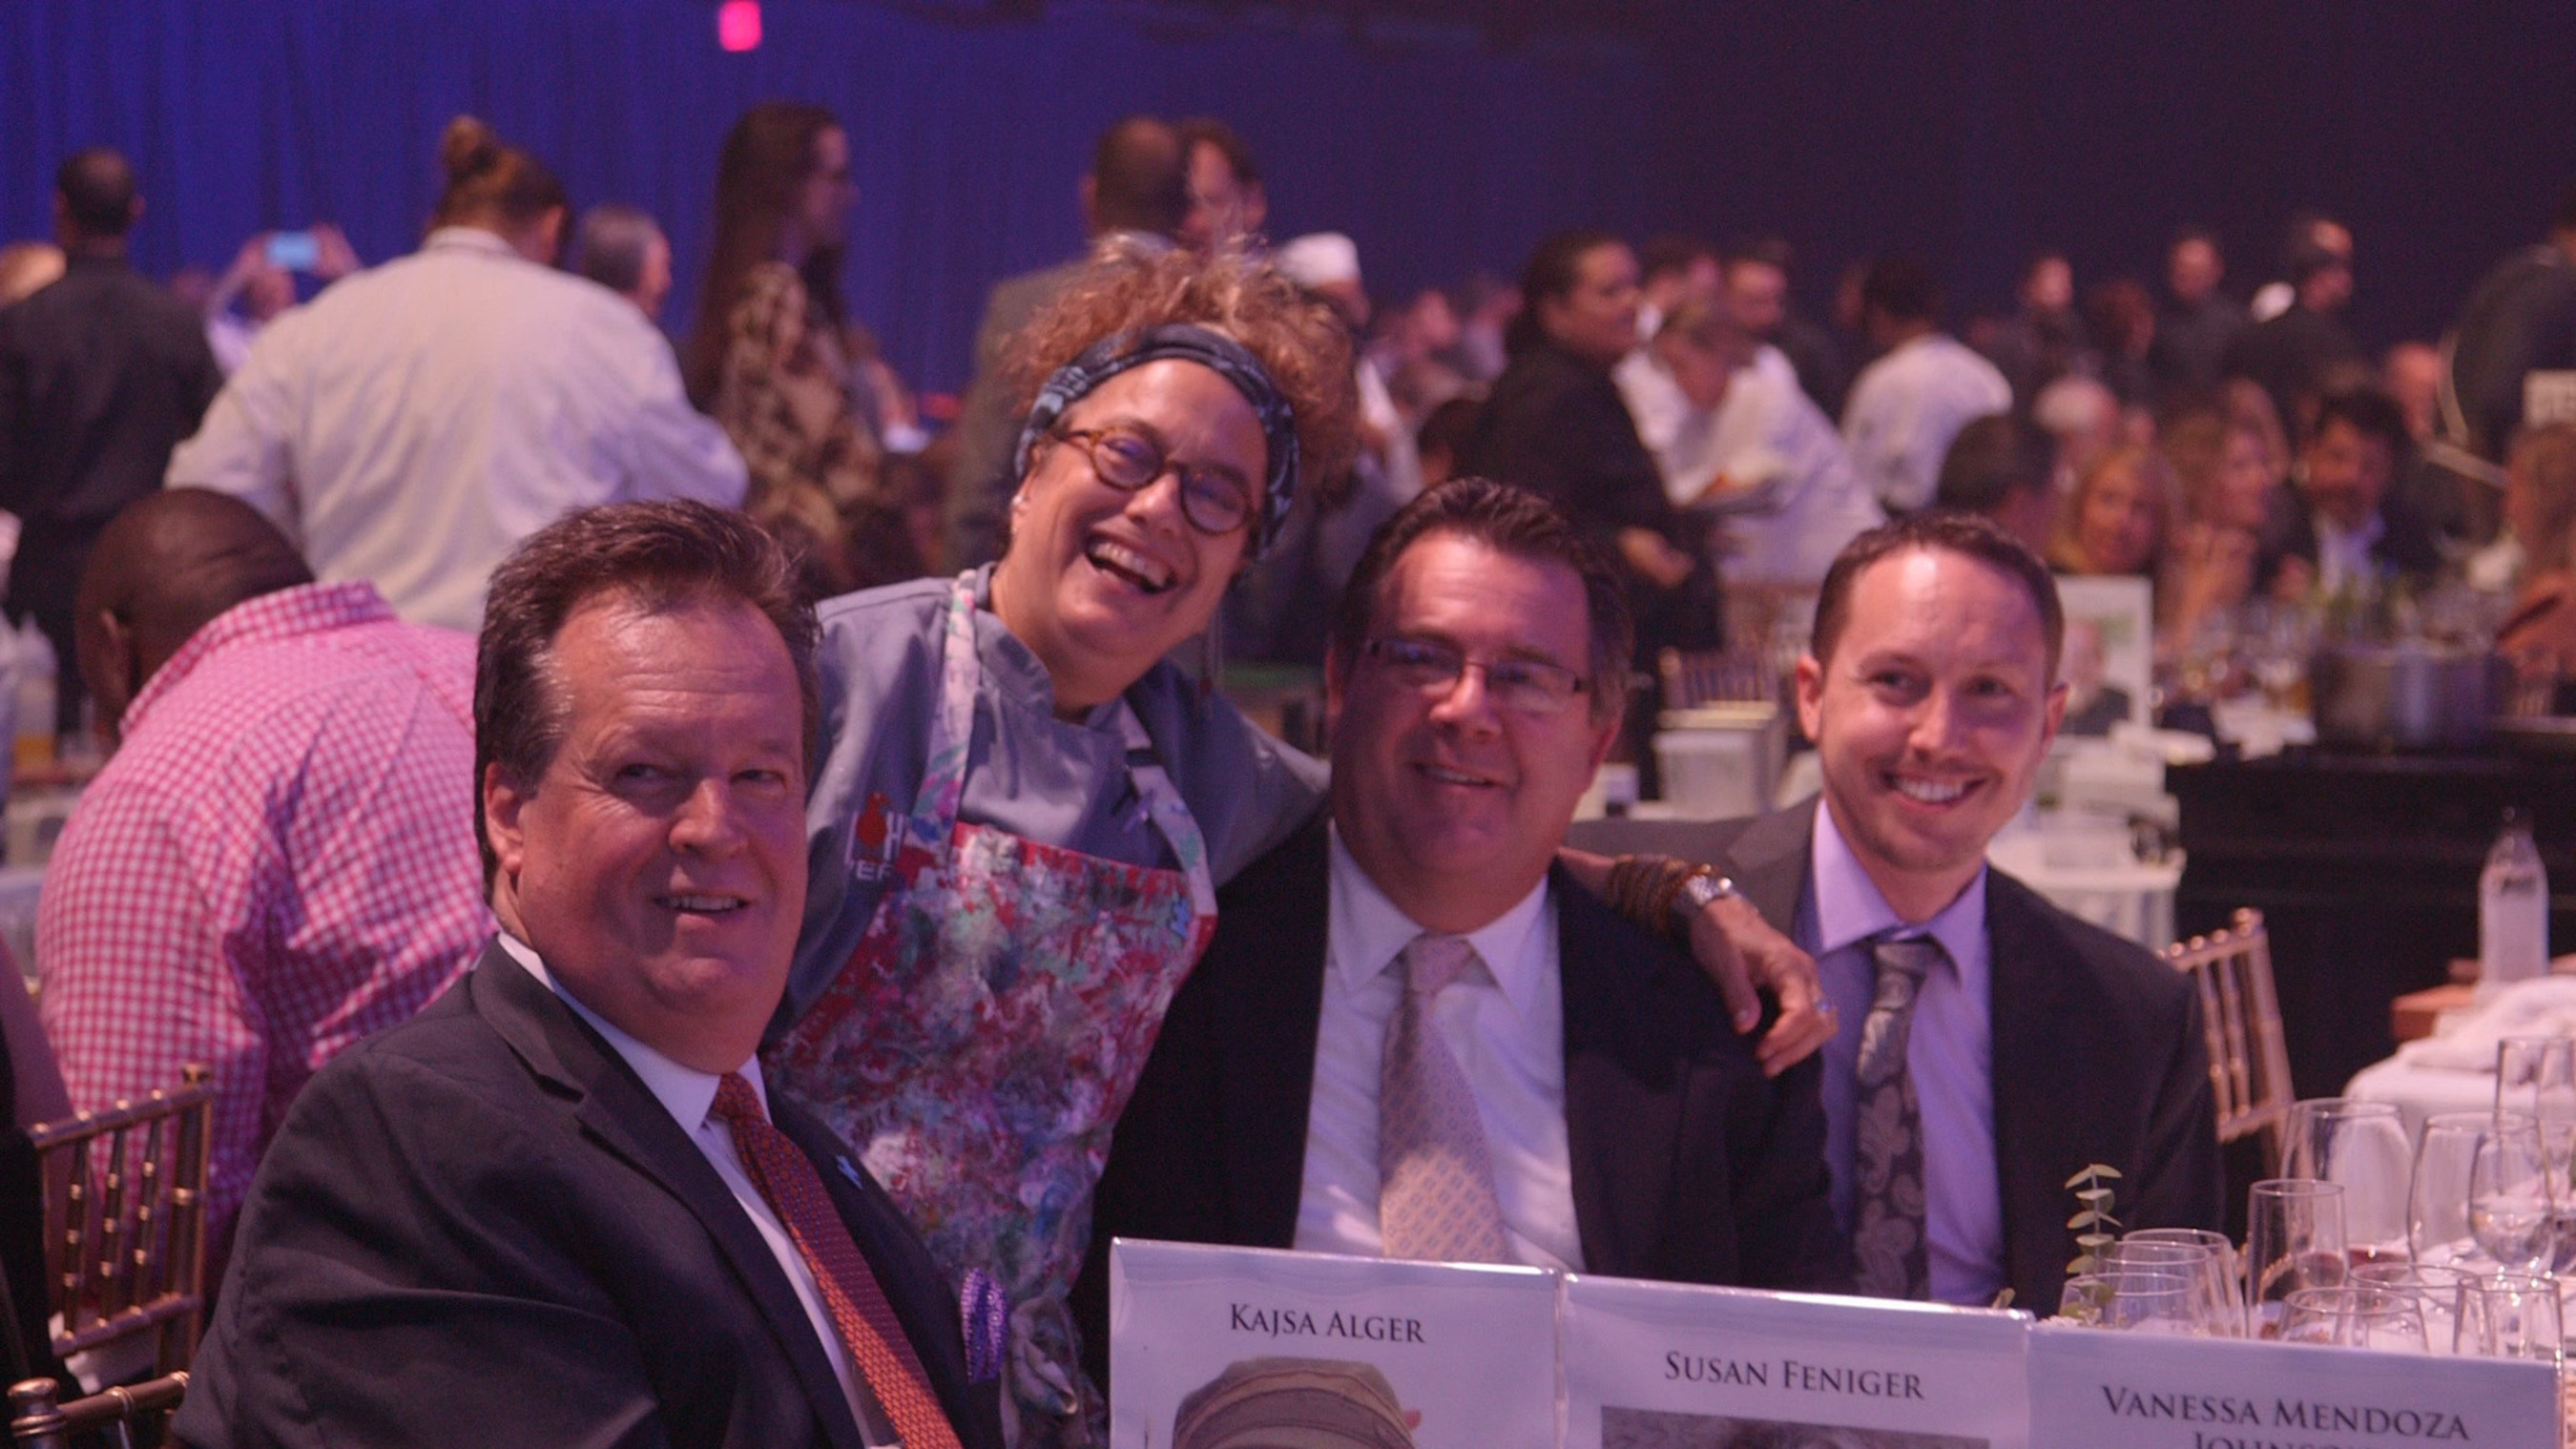 Participating sponsors like the Jenn-Air brand helped raise 1.25 million for Autism Speaks at a recent chef gala held in Los Angeles last week.  Pictured at the Jenn-Air table from left to right:  Brian Maynard, Marketing Director for Jenn-Air; Chef Susan Feniger, owner of Mud Hen Tavern and co/owner of the Border Grill.; Al Allard and Eric Joachim, Ferguson.